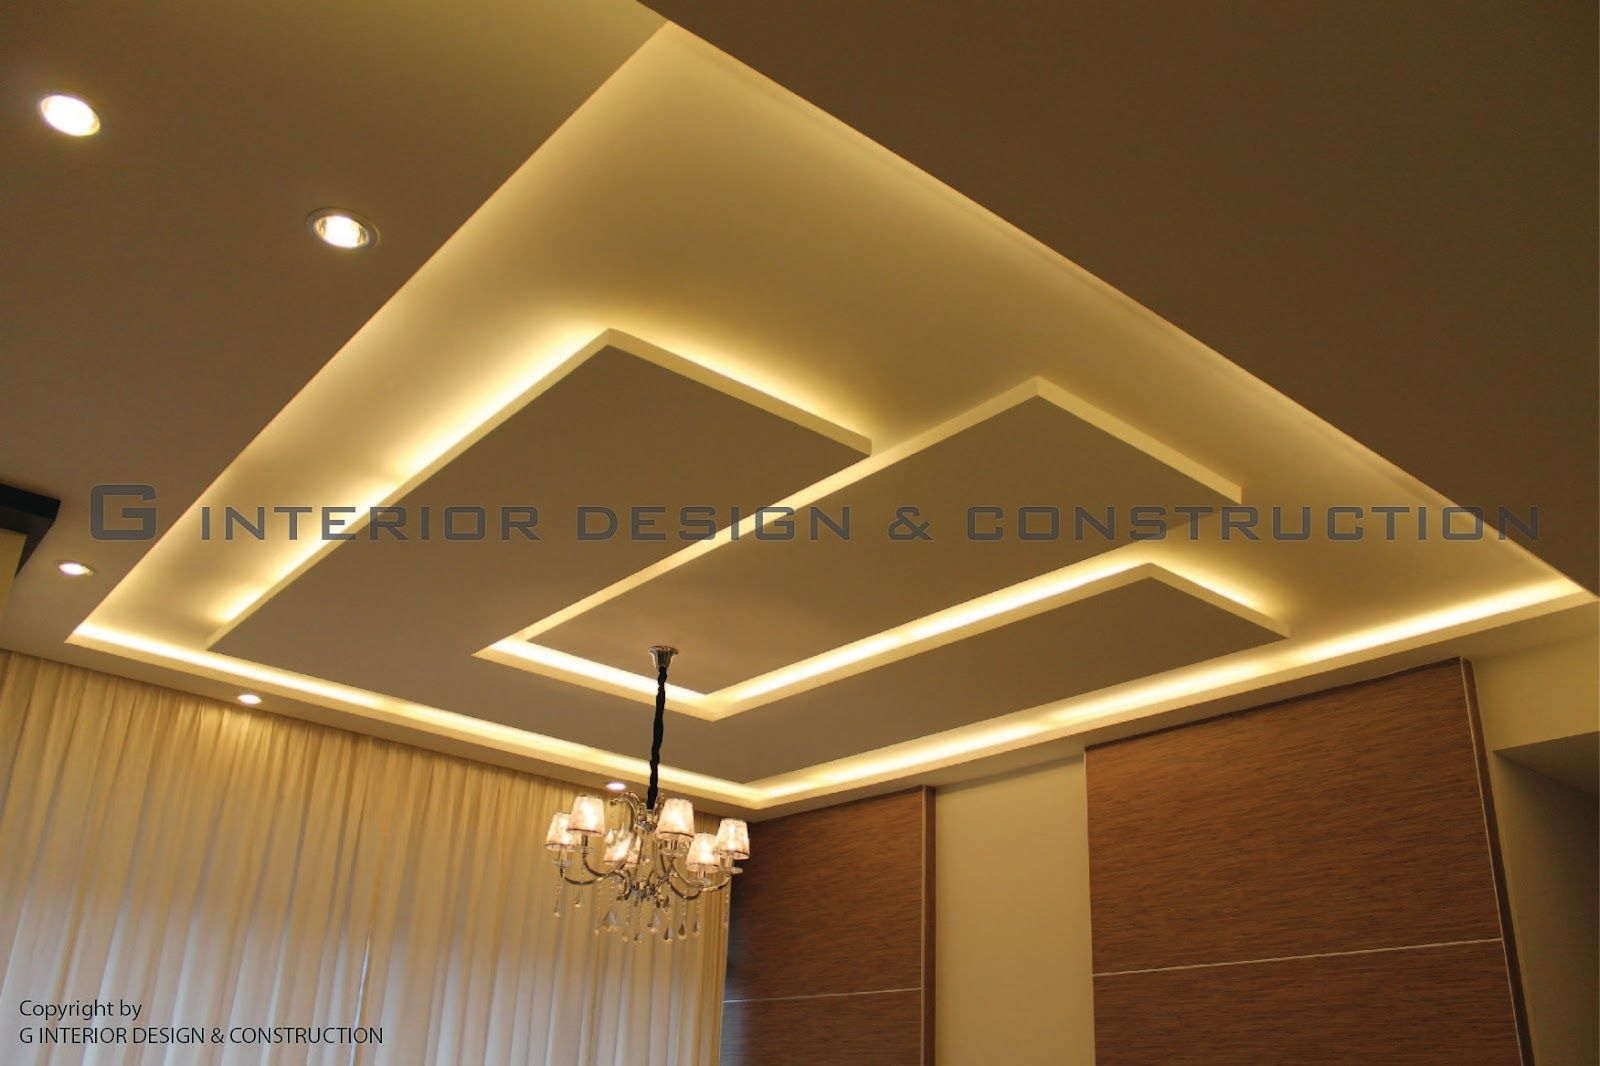 ceiling illumination interior design construction sdn